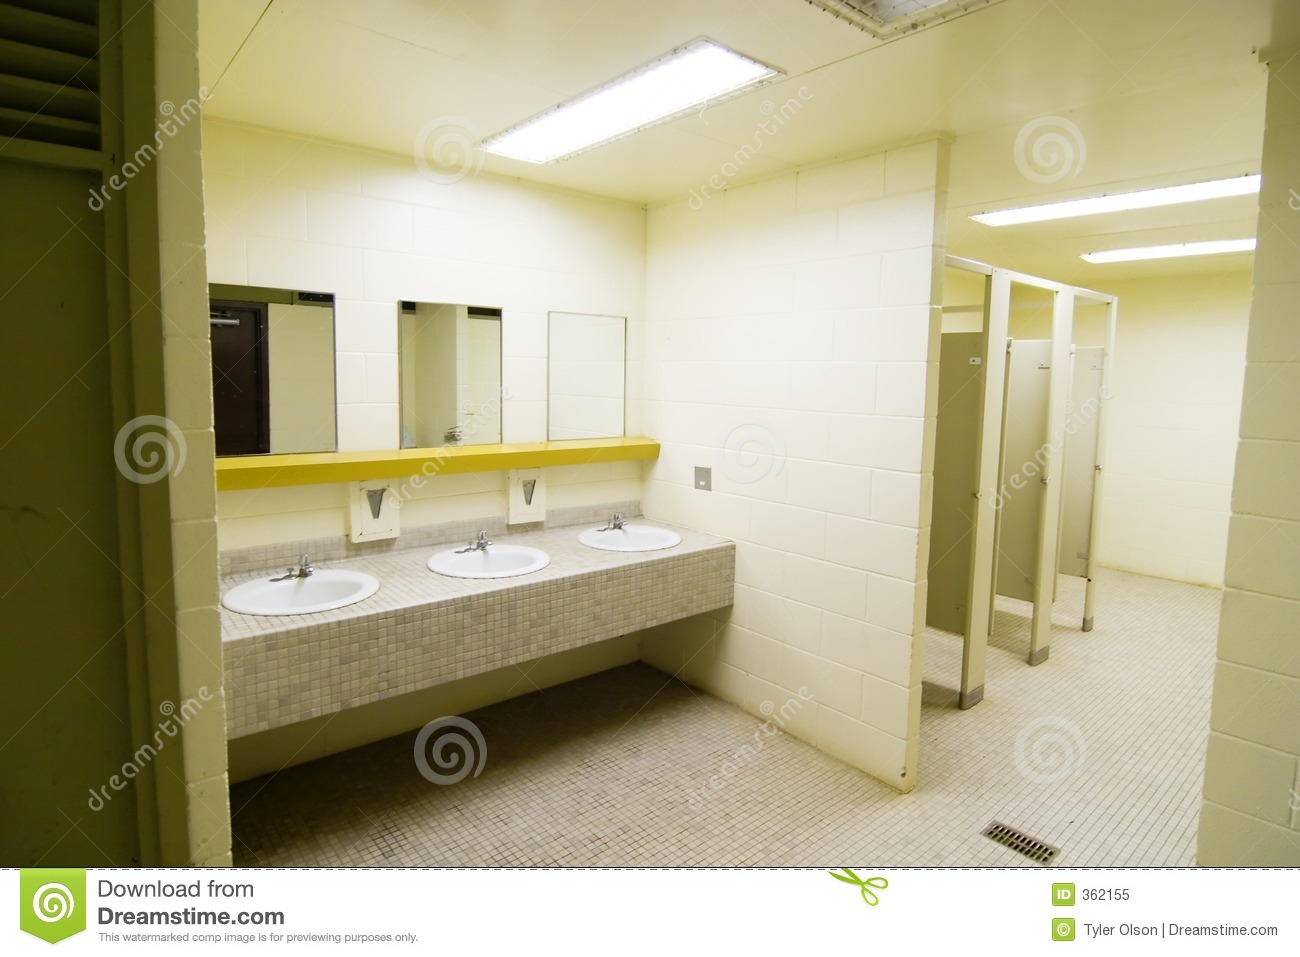 Download Public Washroom Stock Image. Image Of Used, Tile, Closet   362155